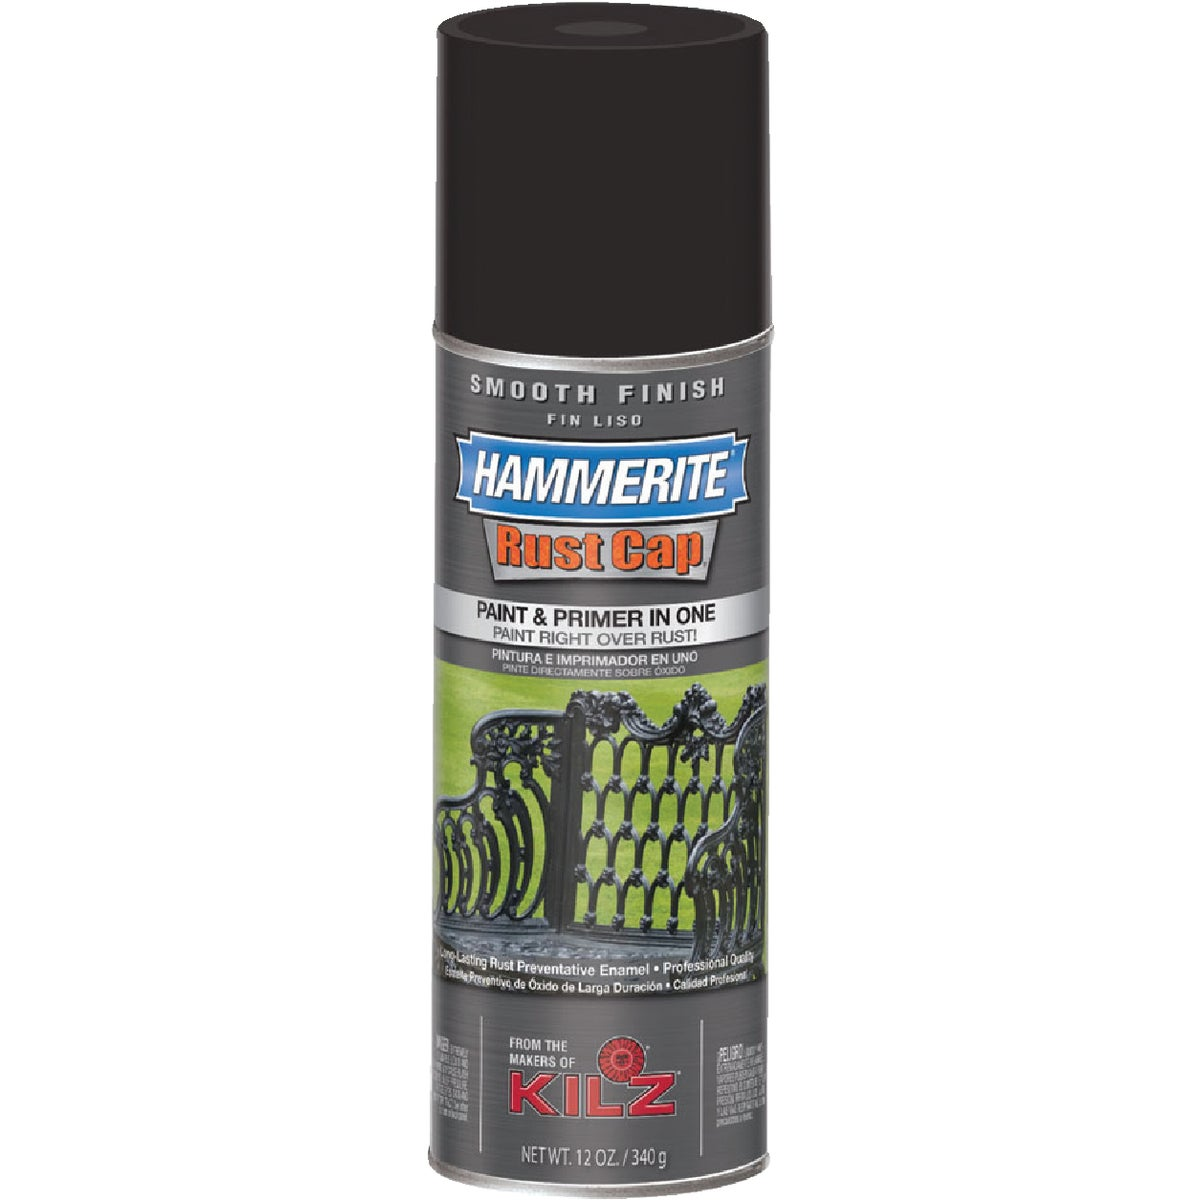 FLT BLK SMTH SPRAY PAINT - 42235 by Masterchem